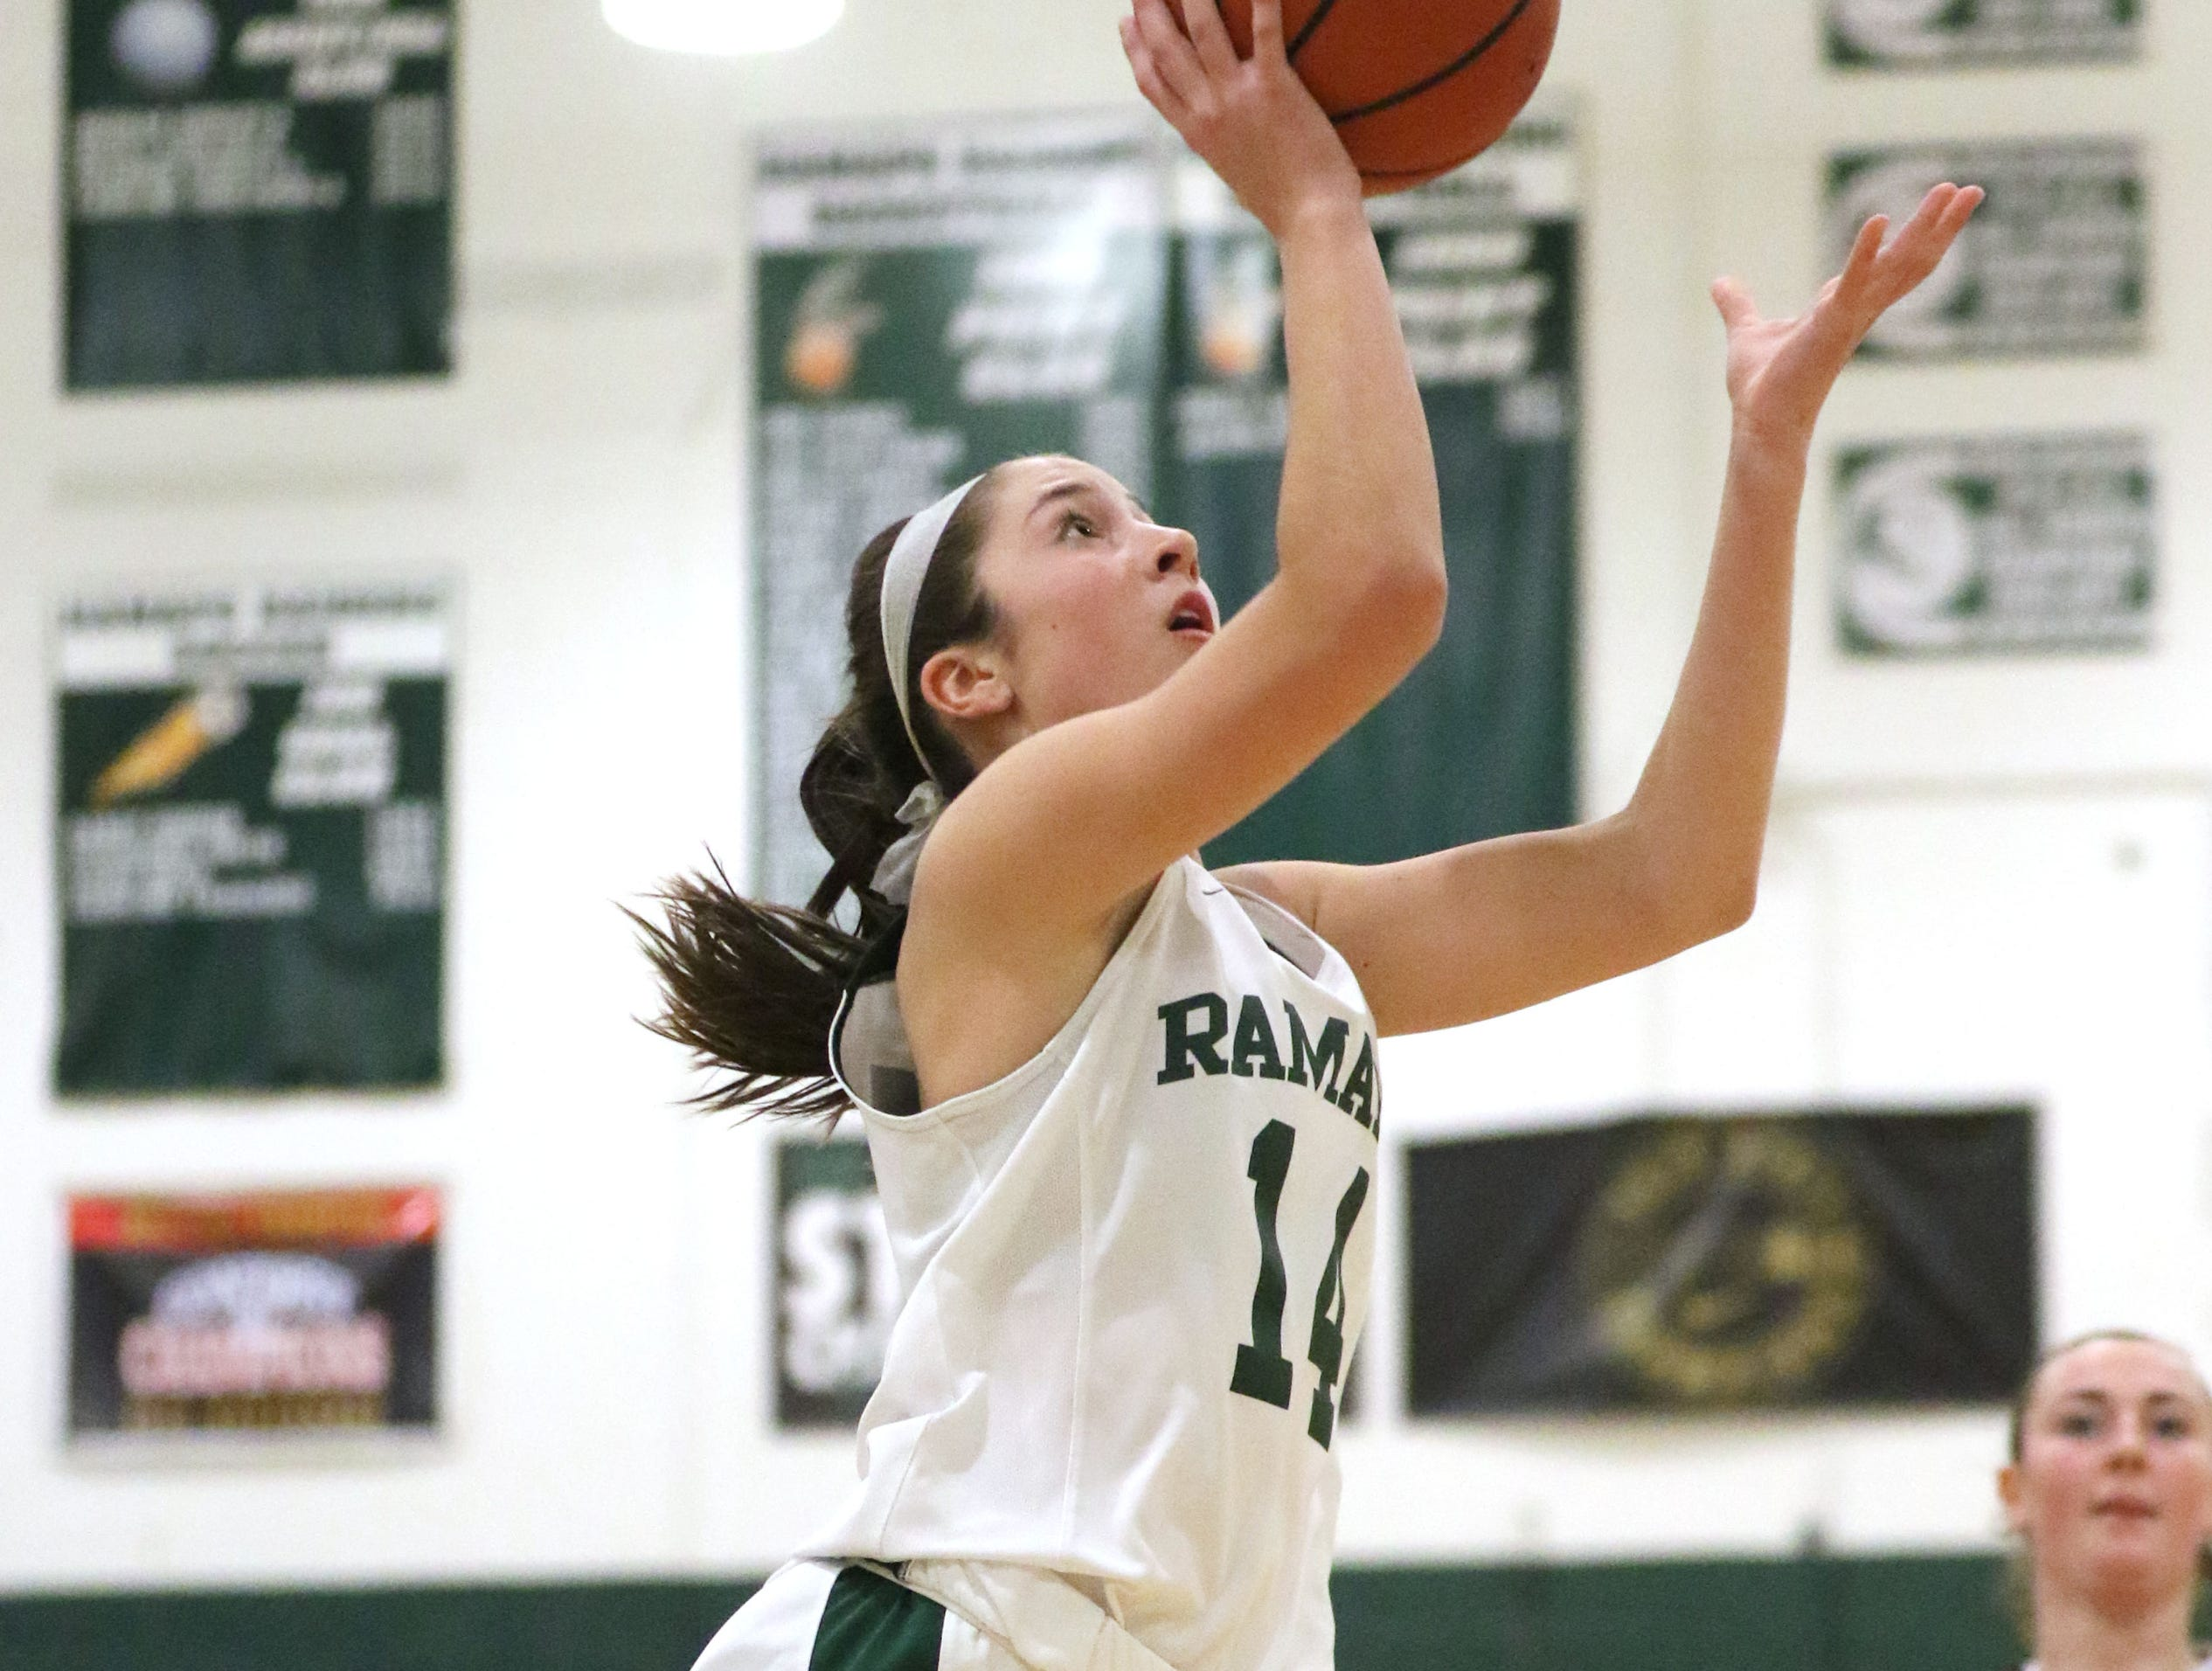 Julia Corella, of Ramapo, goes up for a basket, Thursday, January 10, 2019.